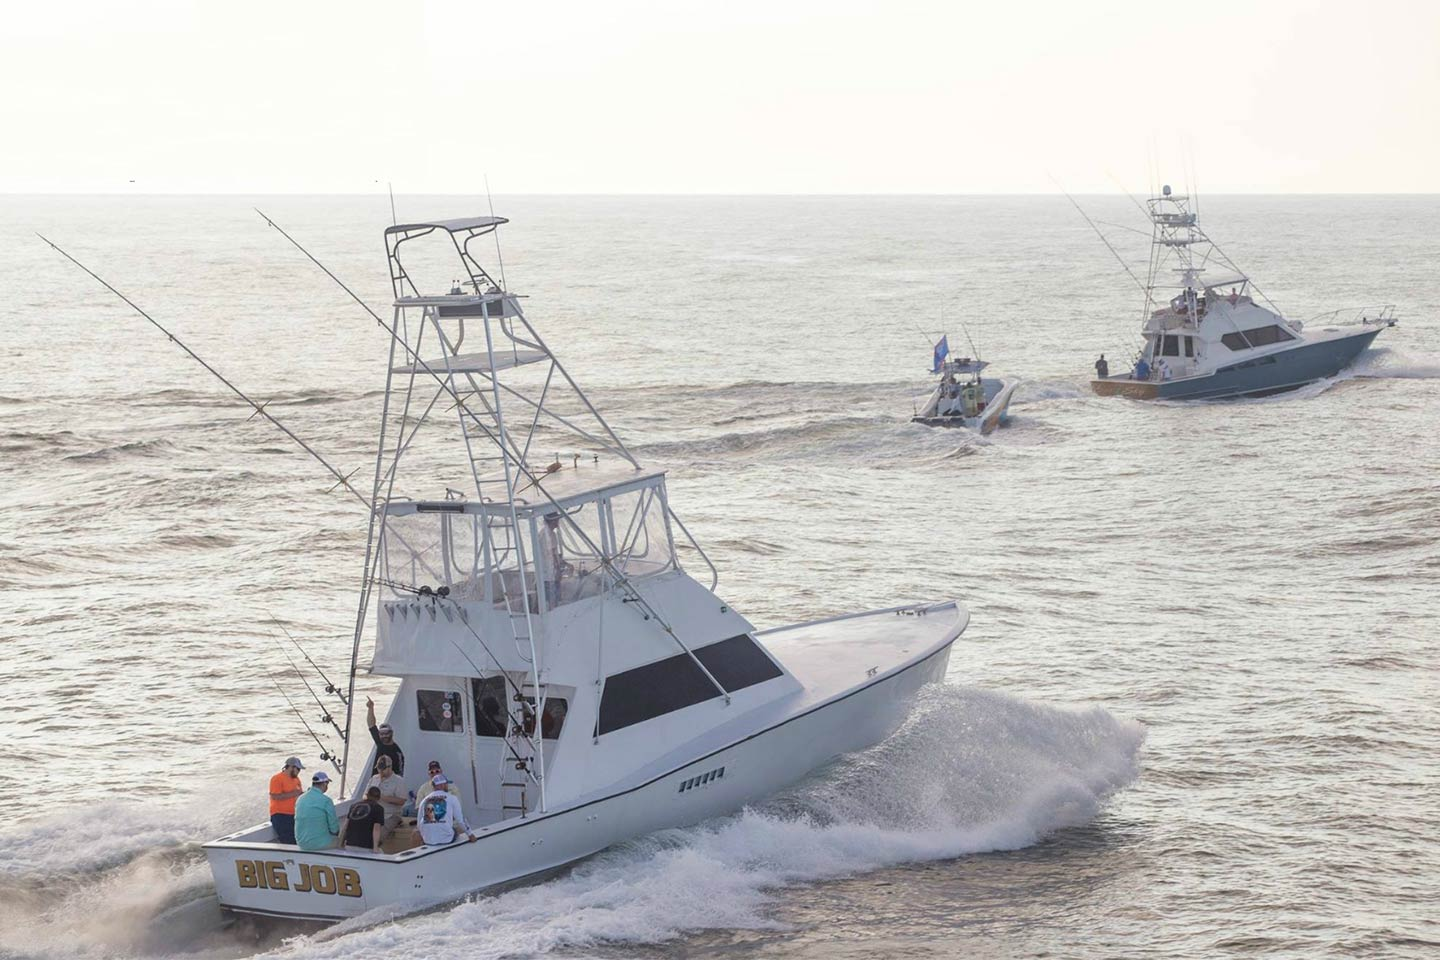 Two large and one small charter fishing boats head out on the choppy waters of the Gulf of Mexico